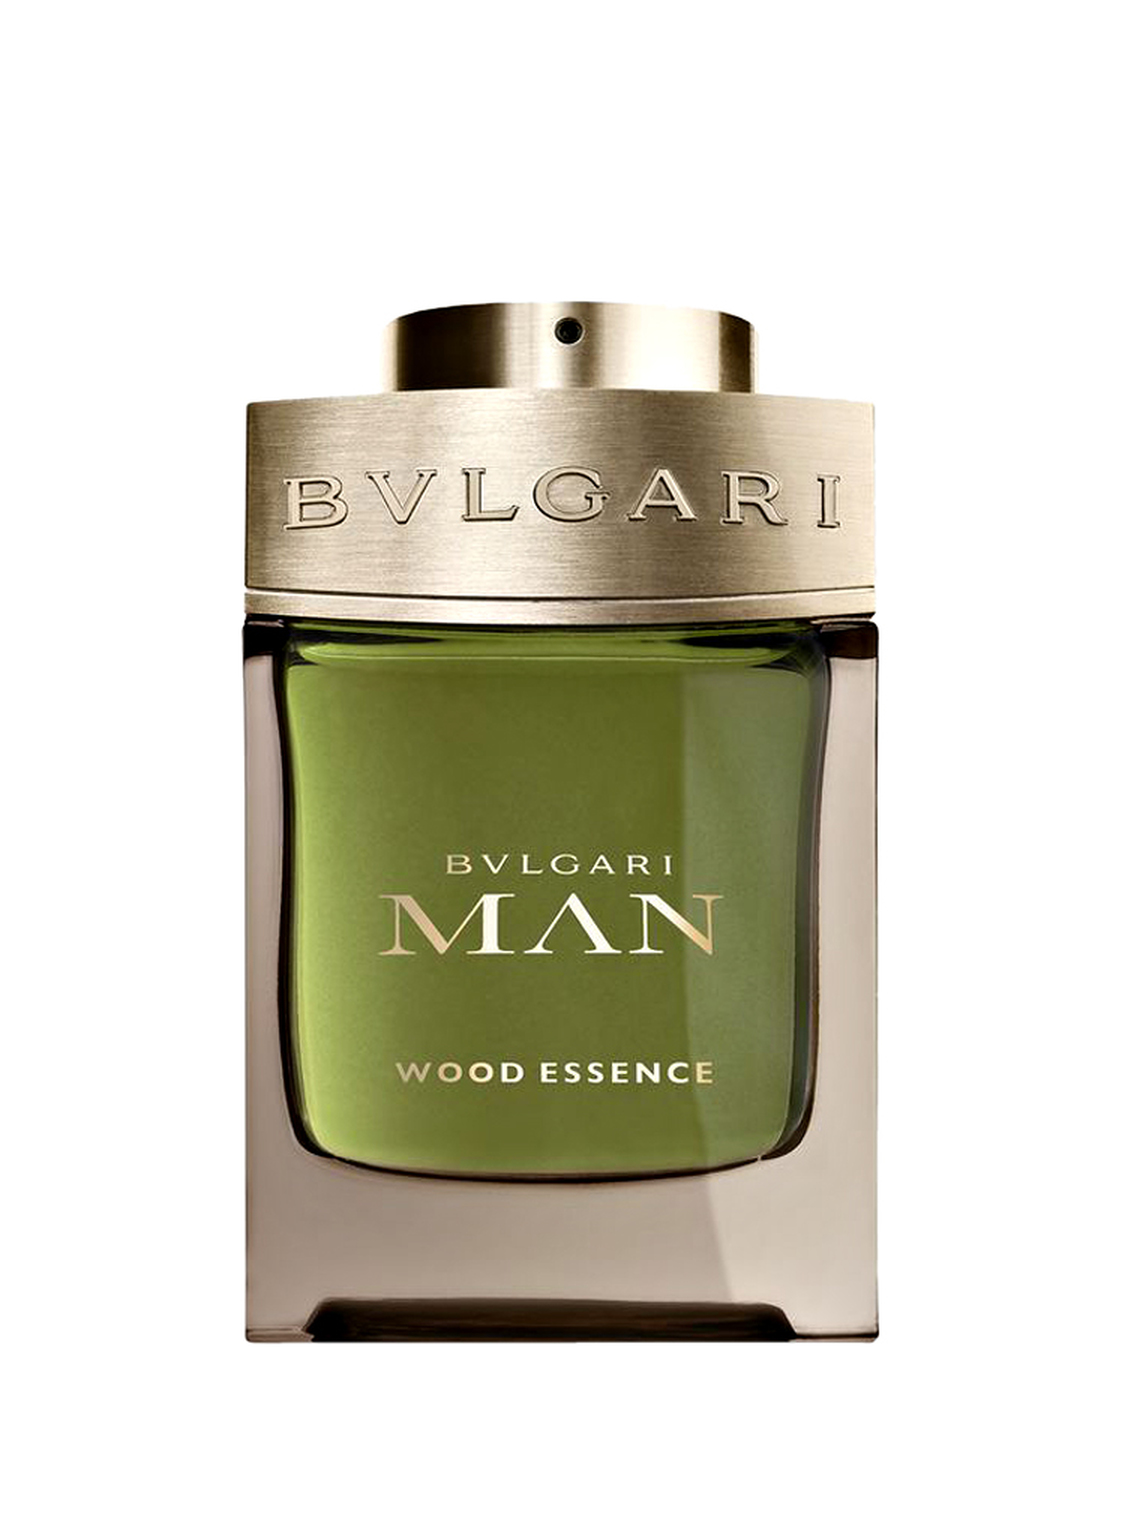 Bvlgari Man Wood Essence Eau de Parfum 60 ml von Bvlgari